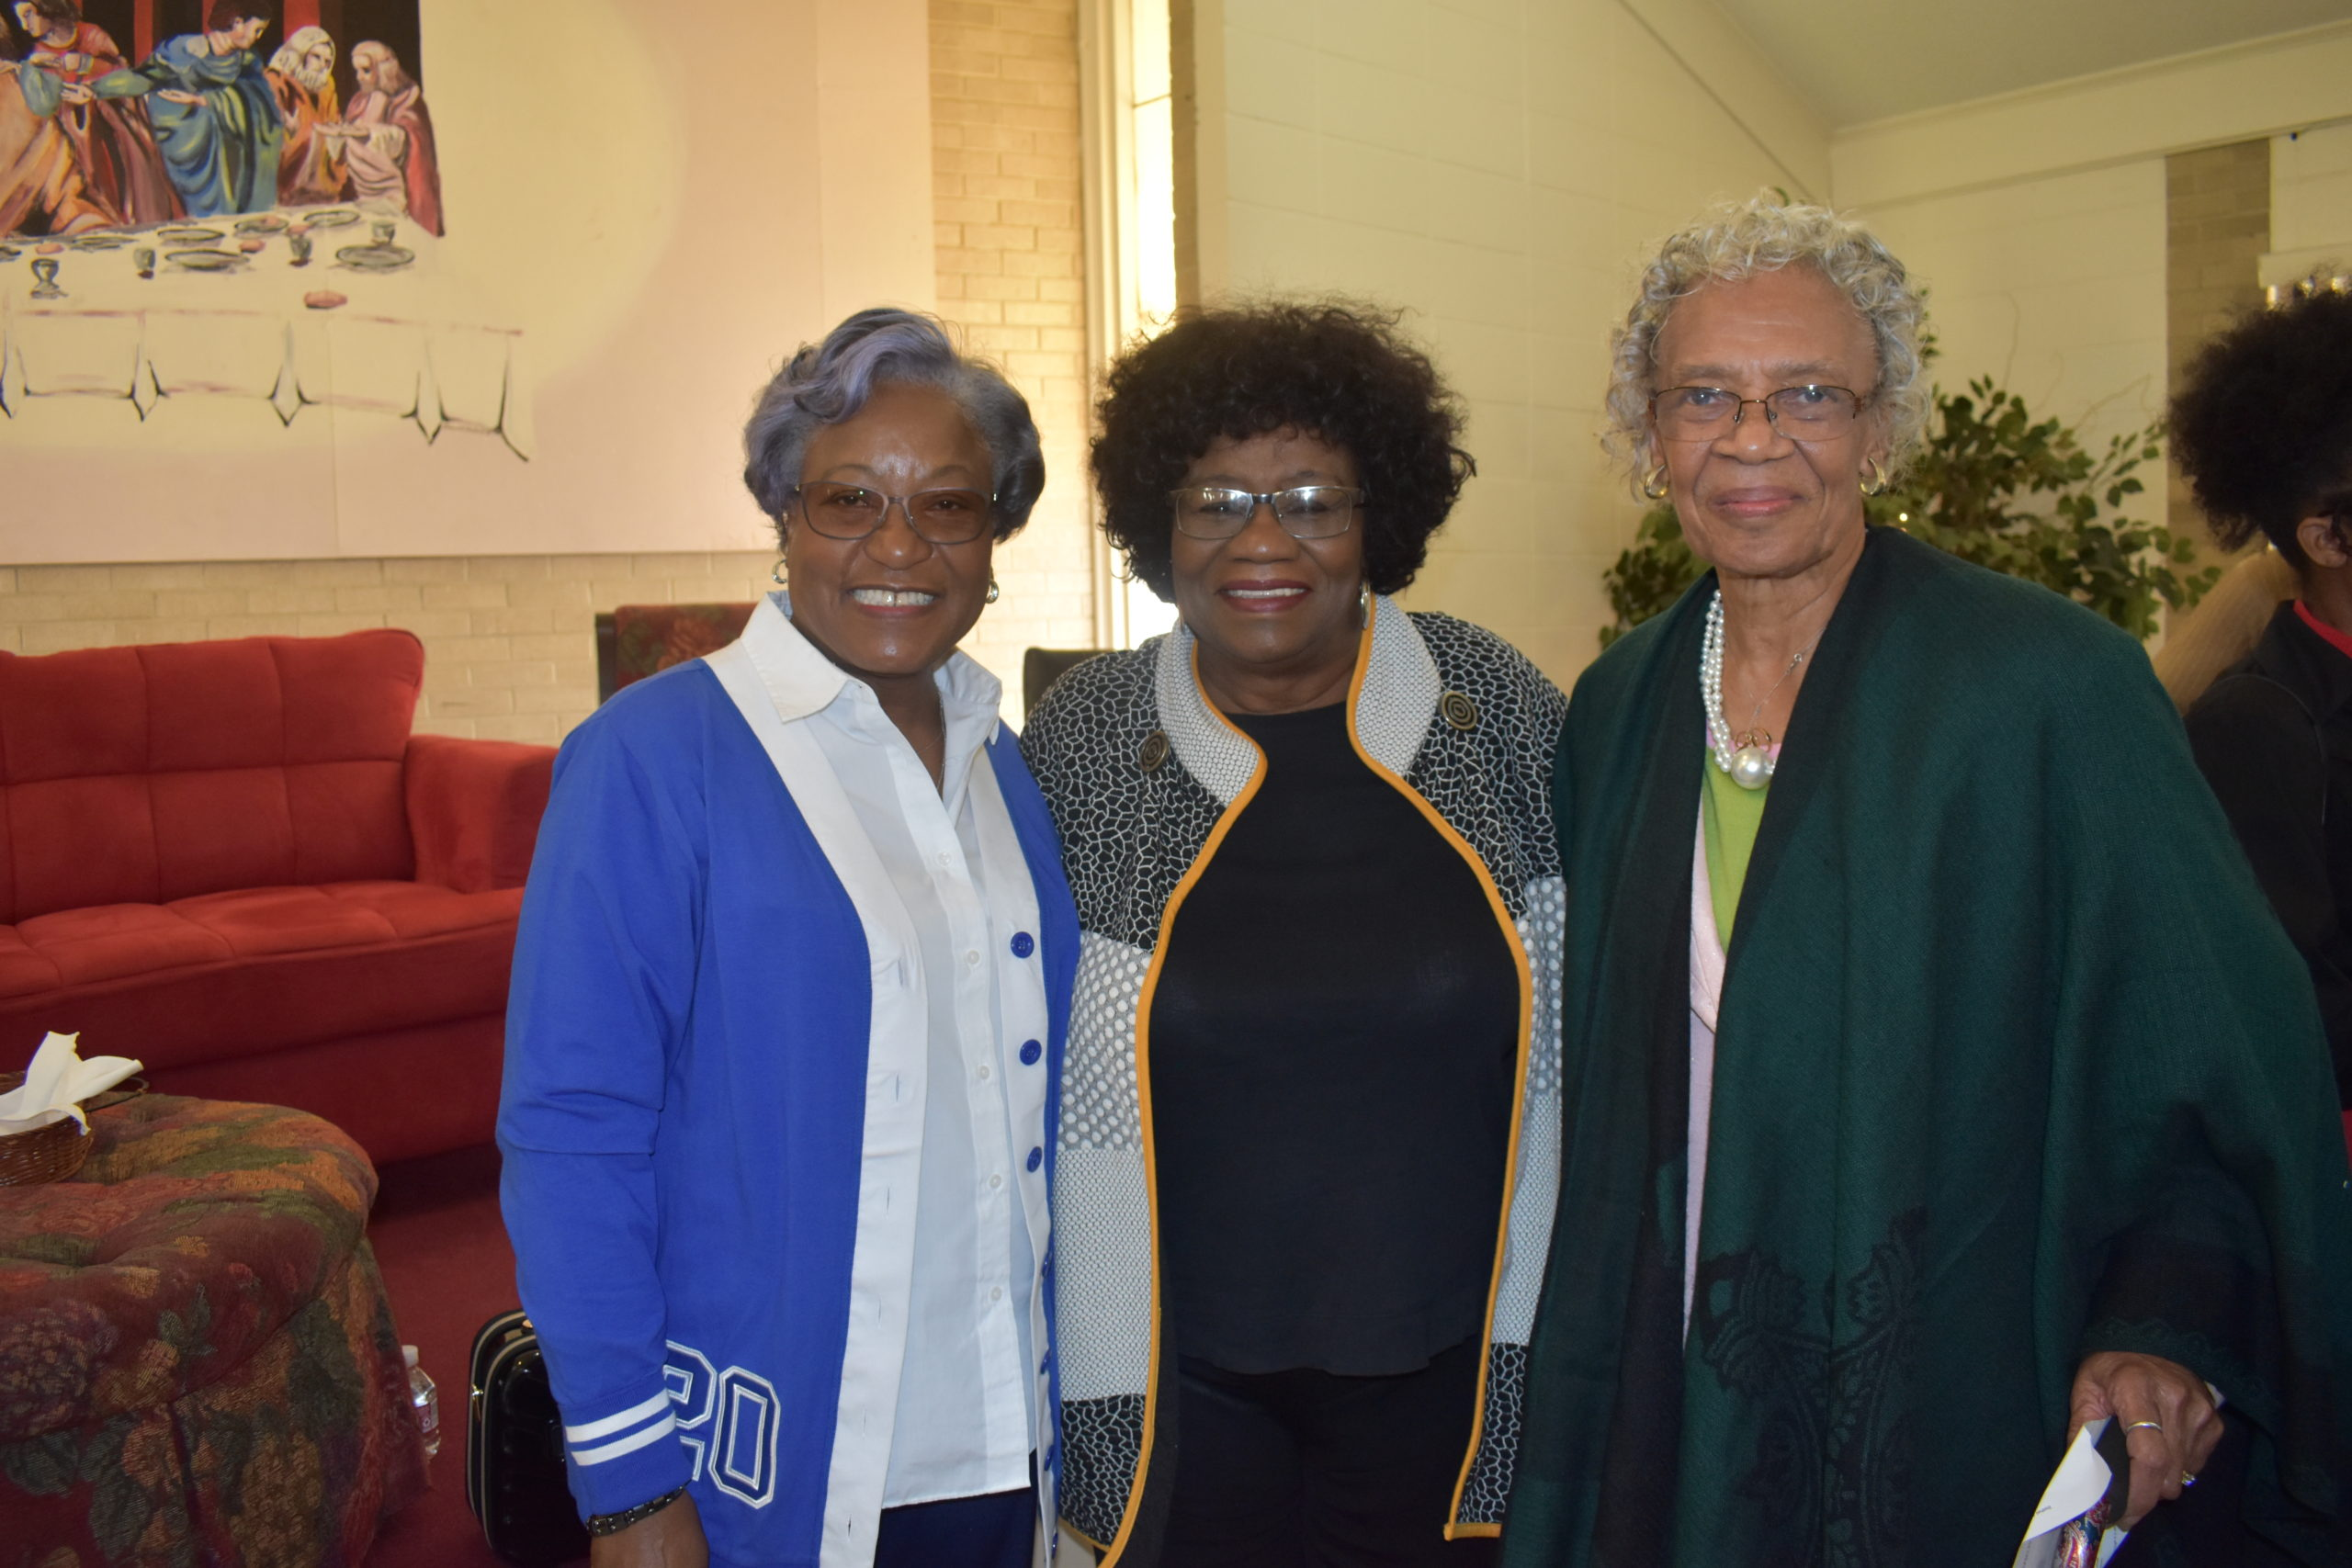 Johnnie Branch, Sen. Linda Chesterfield (1st black graduate of Hendrix College, 1st black female to serve as both president of the Arkansas Teachers Association & Pulaski County Association of Classroom teachers), Barbara Johnson (1st black female UAMS Operating Room head nurse, 1st black female appointed to the AR State Board of Health & 1st black female to serve as its president)